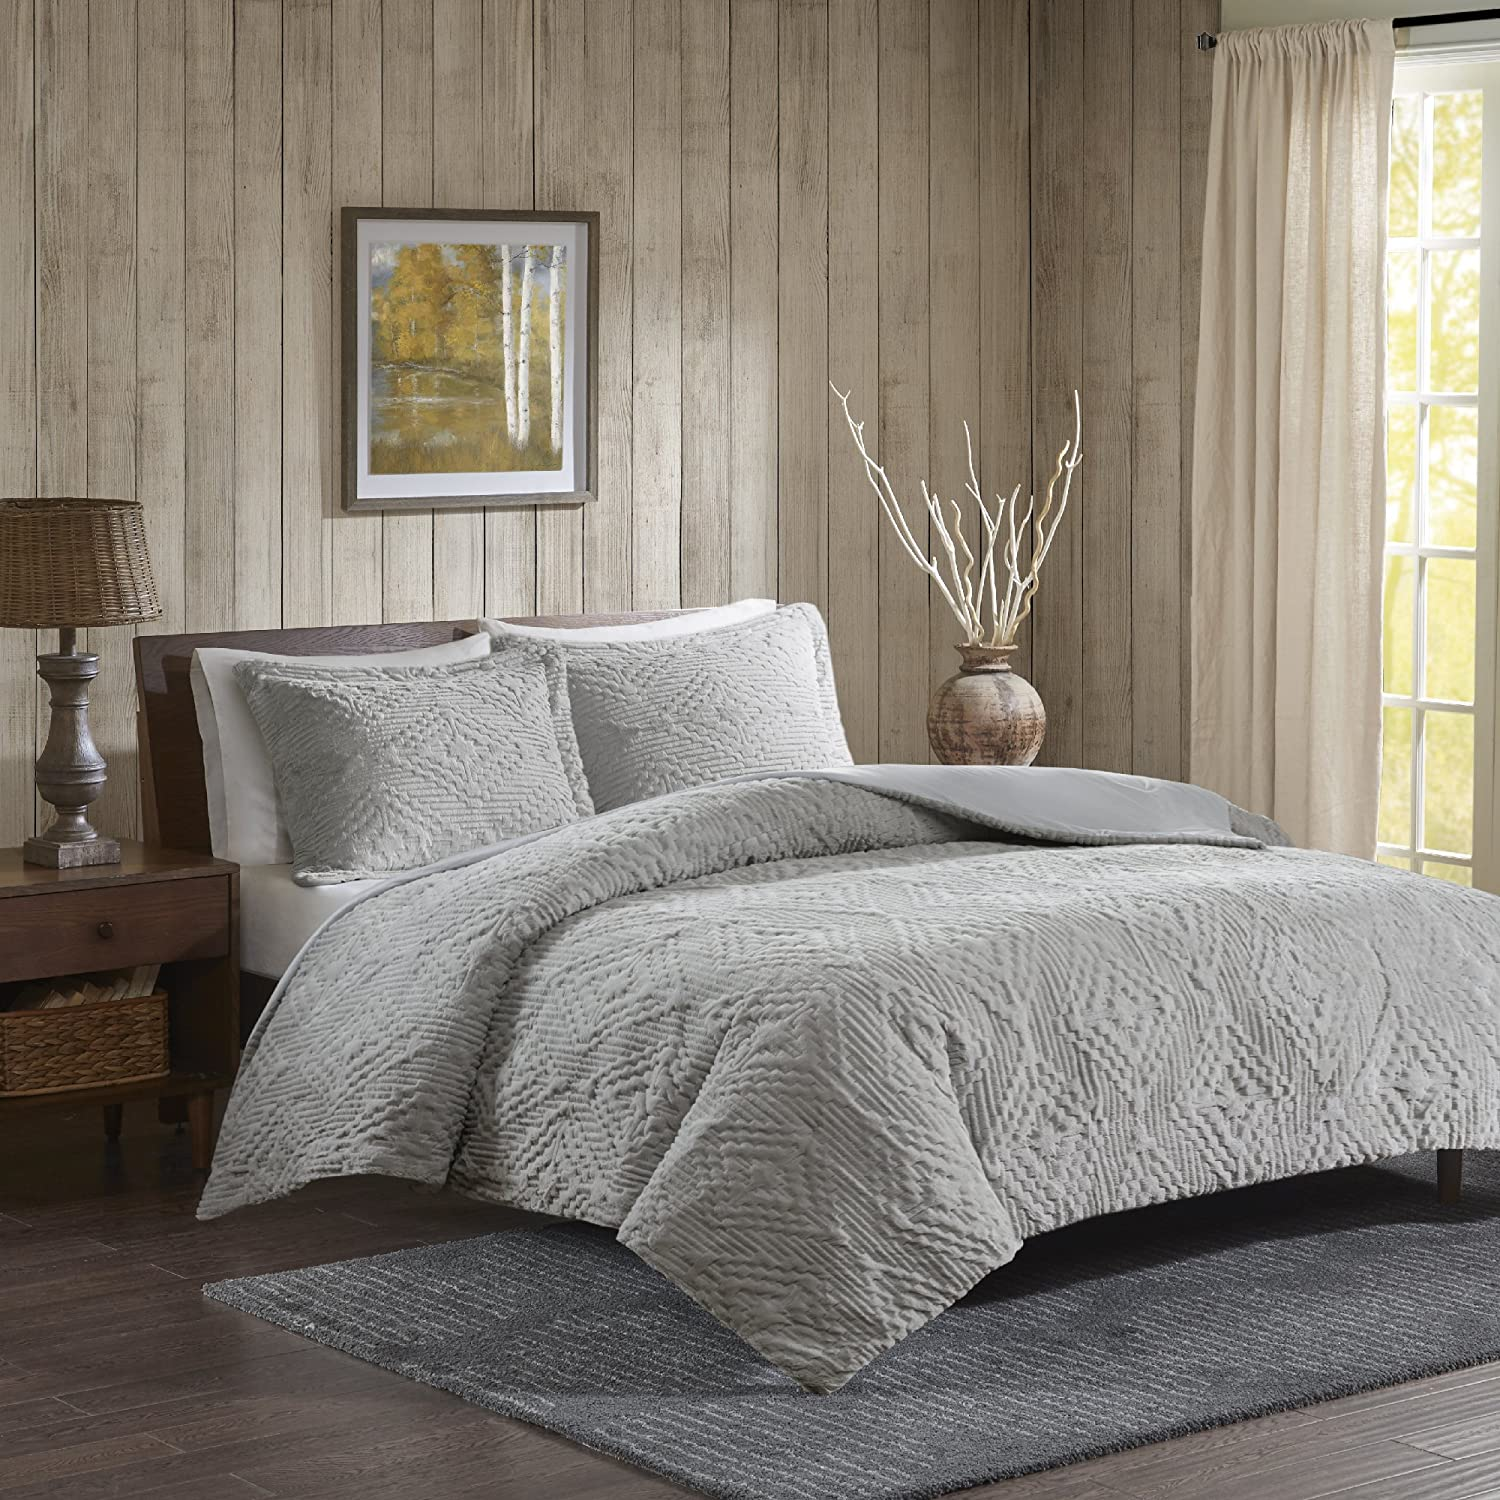 Woolrich Teton Full Queen Size Quilt Bedding Set - Grey, Embroidered – 3 Piece Bedding Quilt Coverlets – Ultra Soft Microfiber Bed Quilts Quilted Coverlet